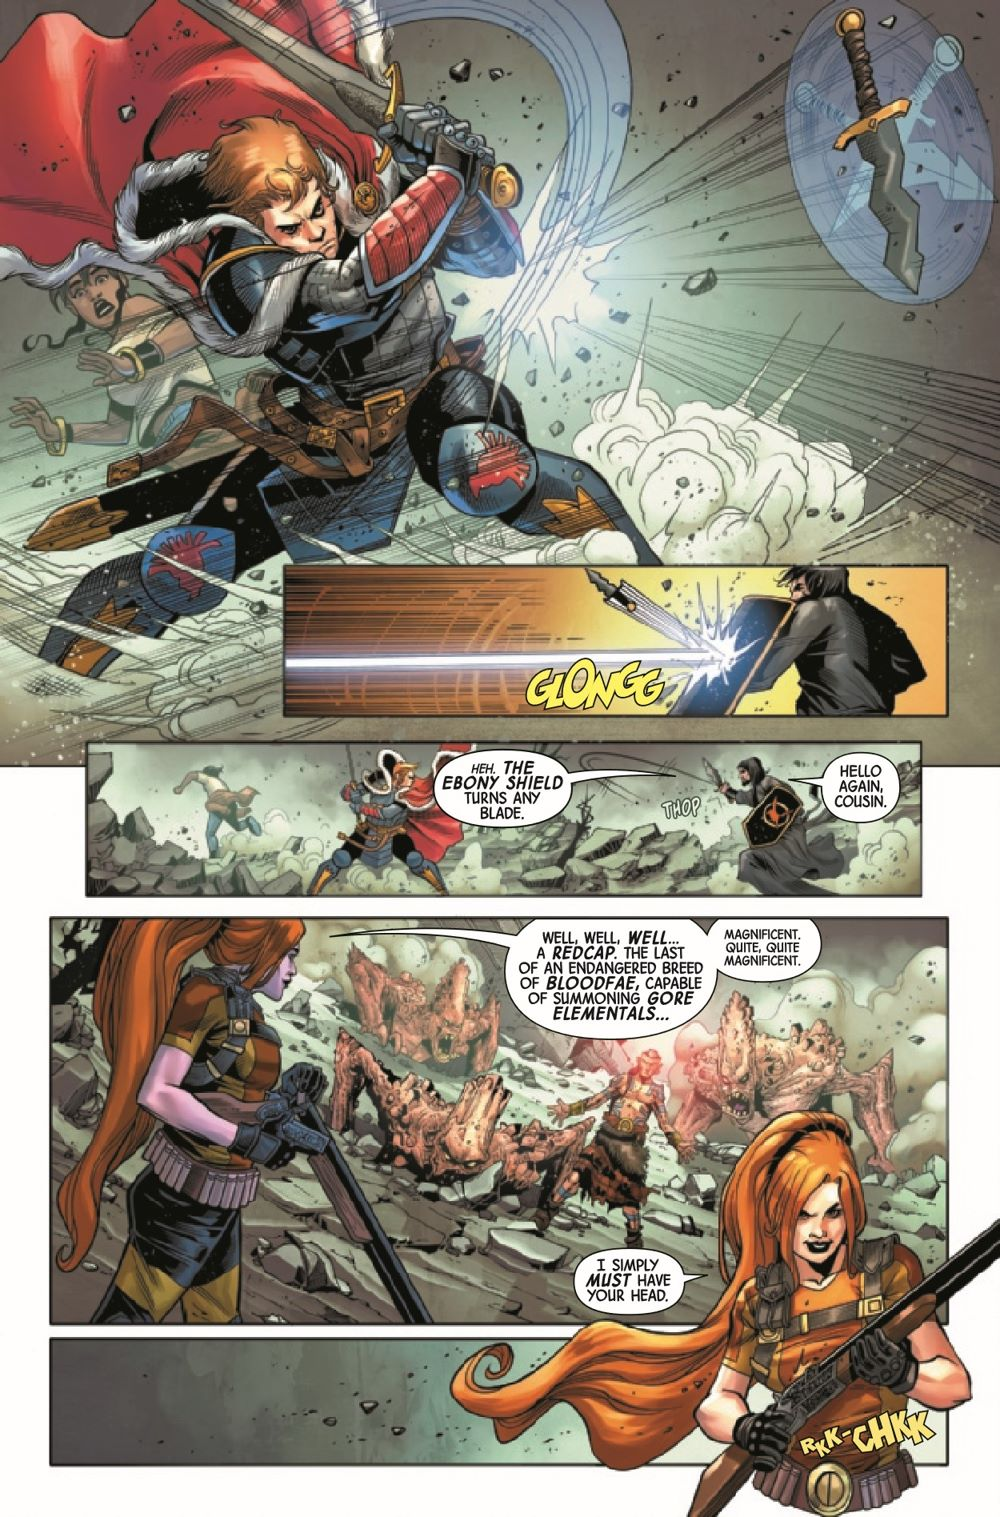 BLKKNGHTCURSE2021003_Preview-5 ComicList Previews: BLACK KNIGHT CURSE OF THE EBONY BLADE #3 (OF 5)